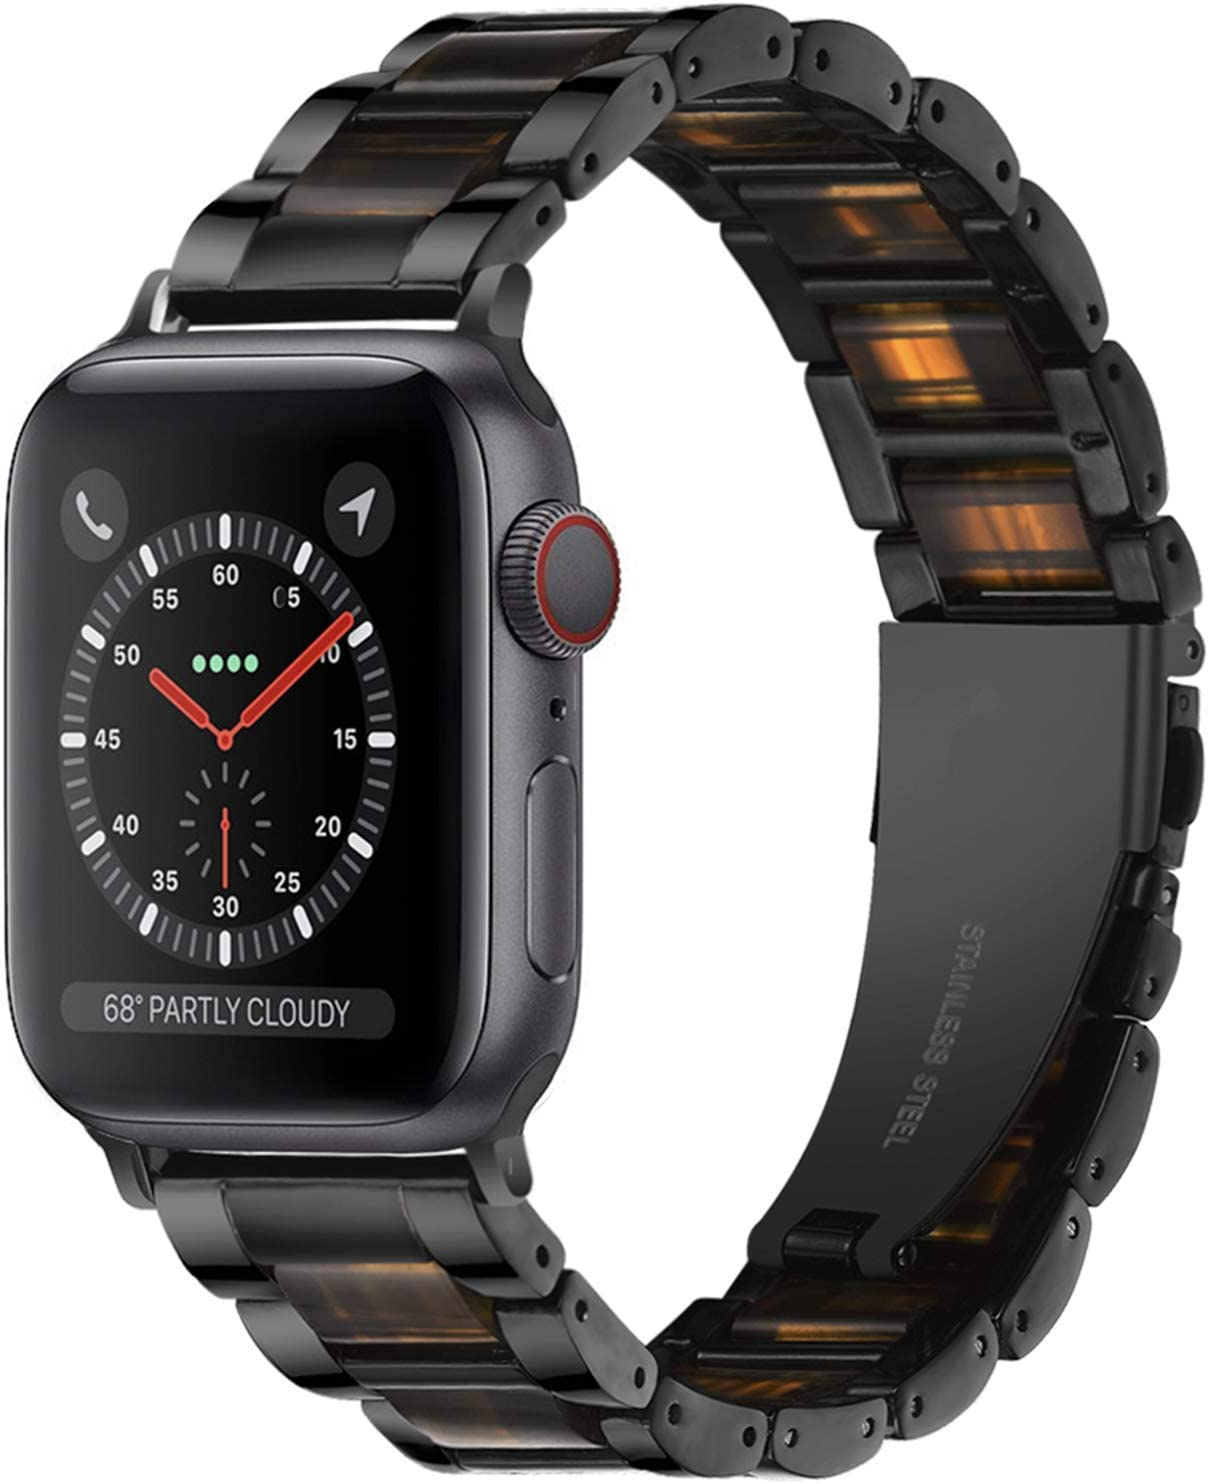 Light Apple Watch Band - Resin with Stainless Steel Luxury iWatch Band Bracelet Compatible with Comfortable Stainless steel buckle for Apple Watch Series SE 6 5 4 3 2 1 (Black-Deep Beeswax, 38mm/40mm)